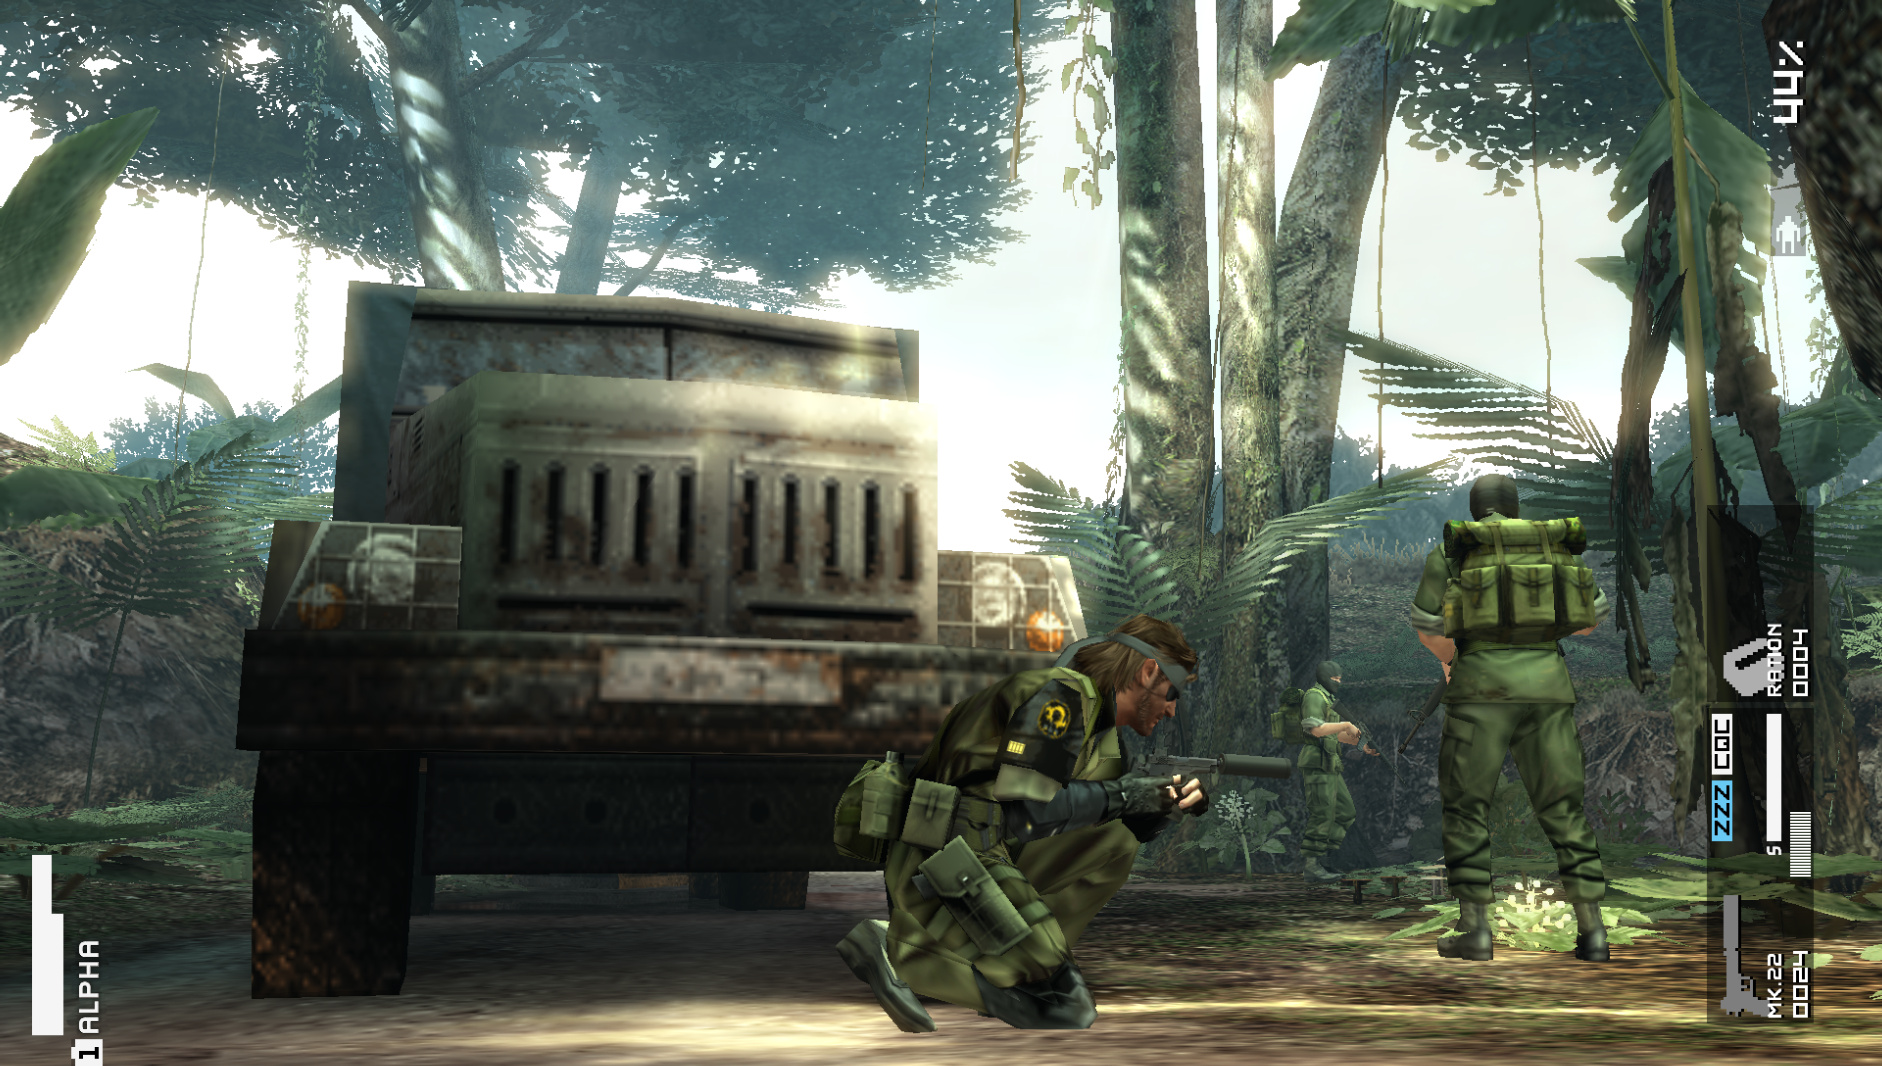 Metal Gear Solid HD Collection Review - gamingbolt.com